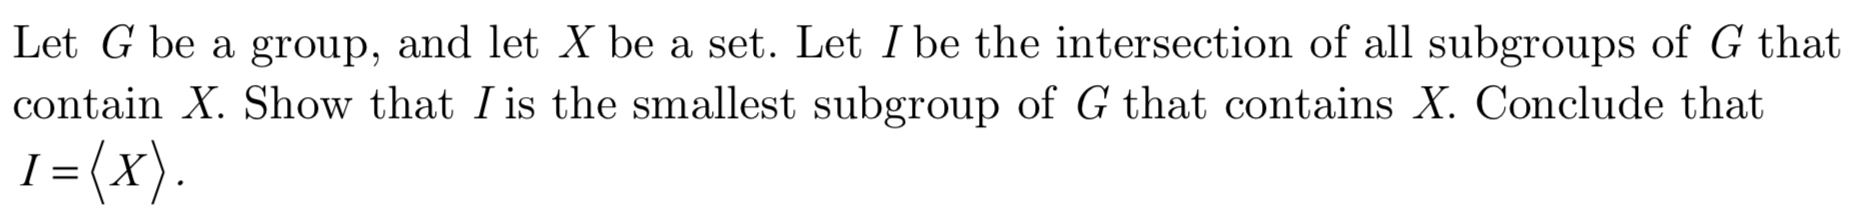 Let G be a group, and let X be a set. Let I be the intersection of all subgroups of G that contain X. Show that I is the smallest subgroup of G that contains X. Conclude that 1= (x) I